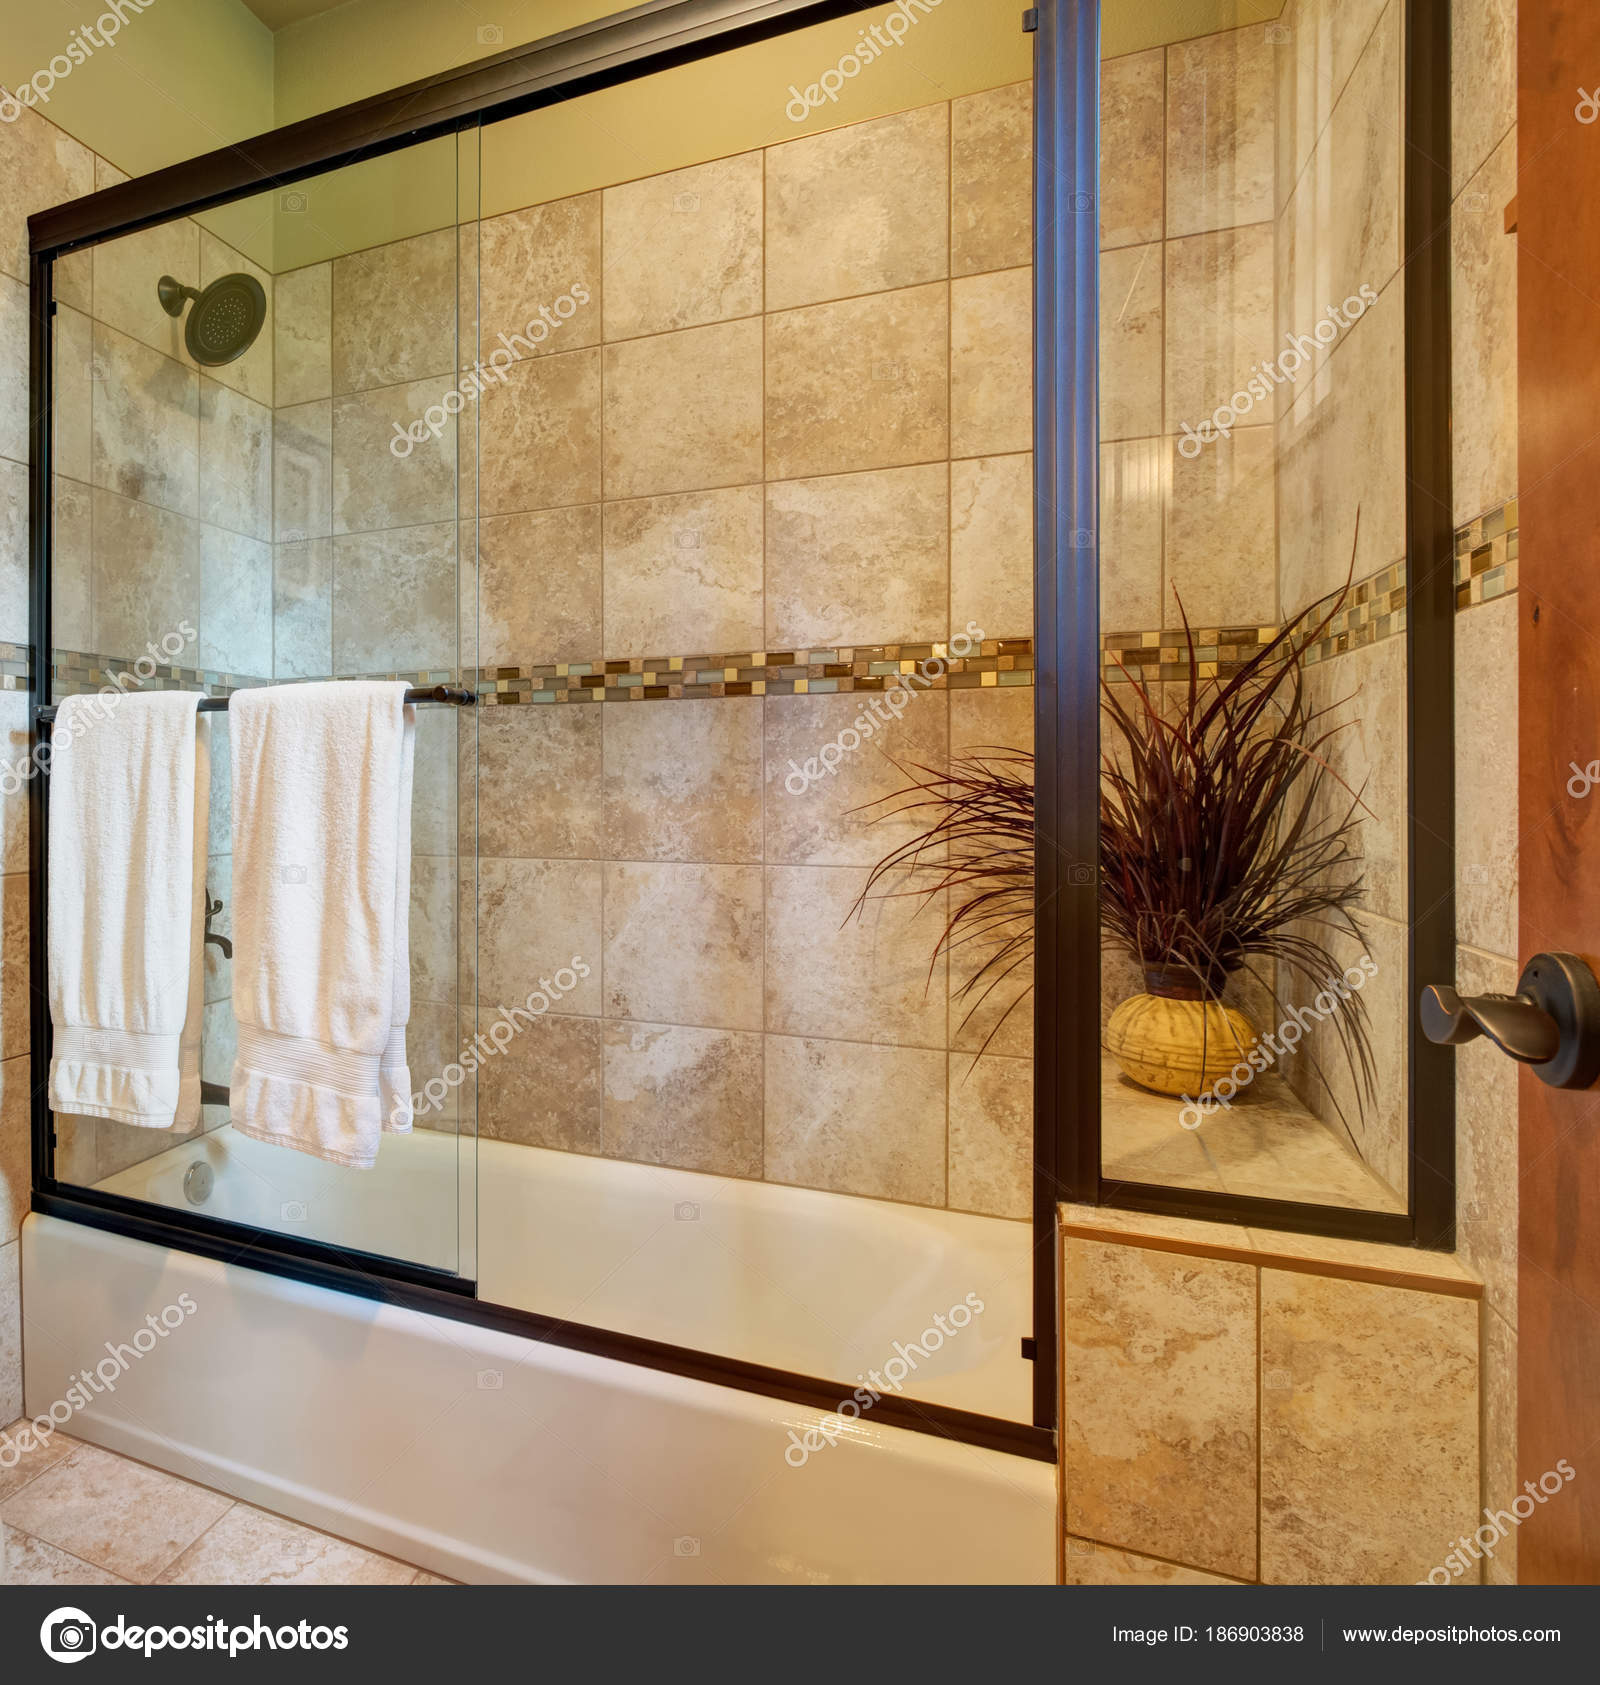 Depositphotos_186903838 Stock Photo Master Bathroom Interior With Close